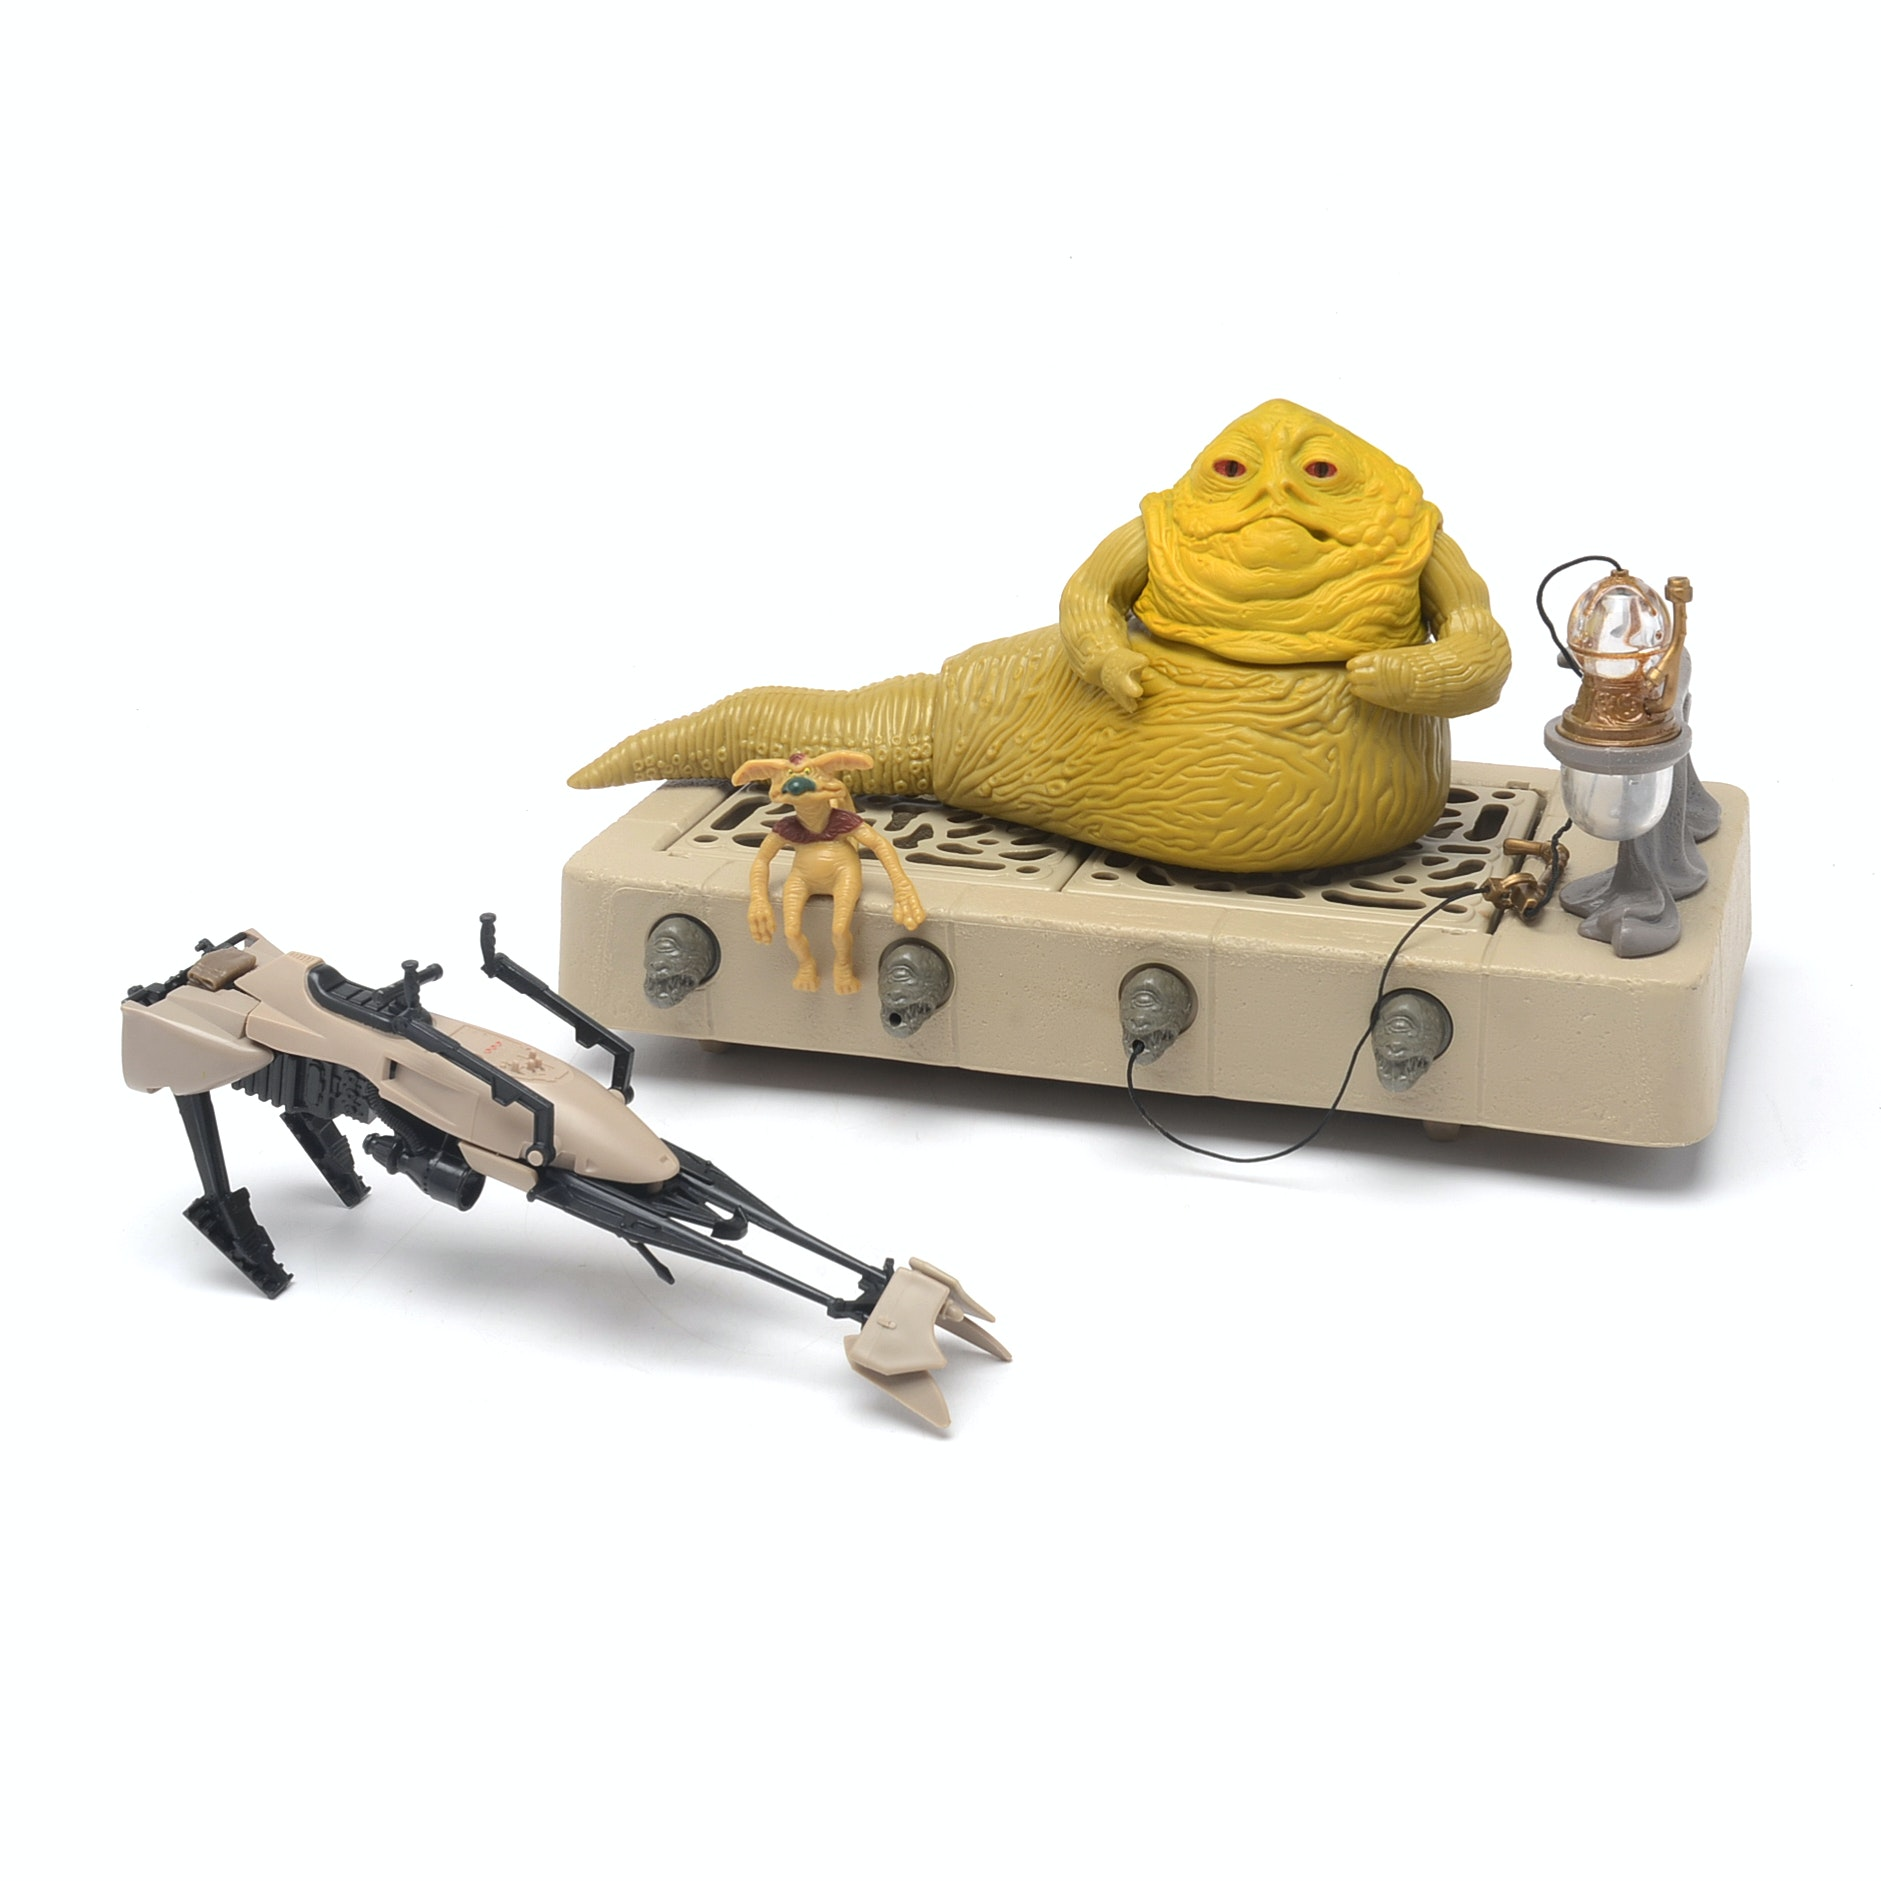 Vintage Return of the Jedi Jabba the Hutt Action Play Set and Speeder Bike